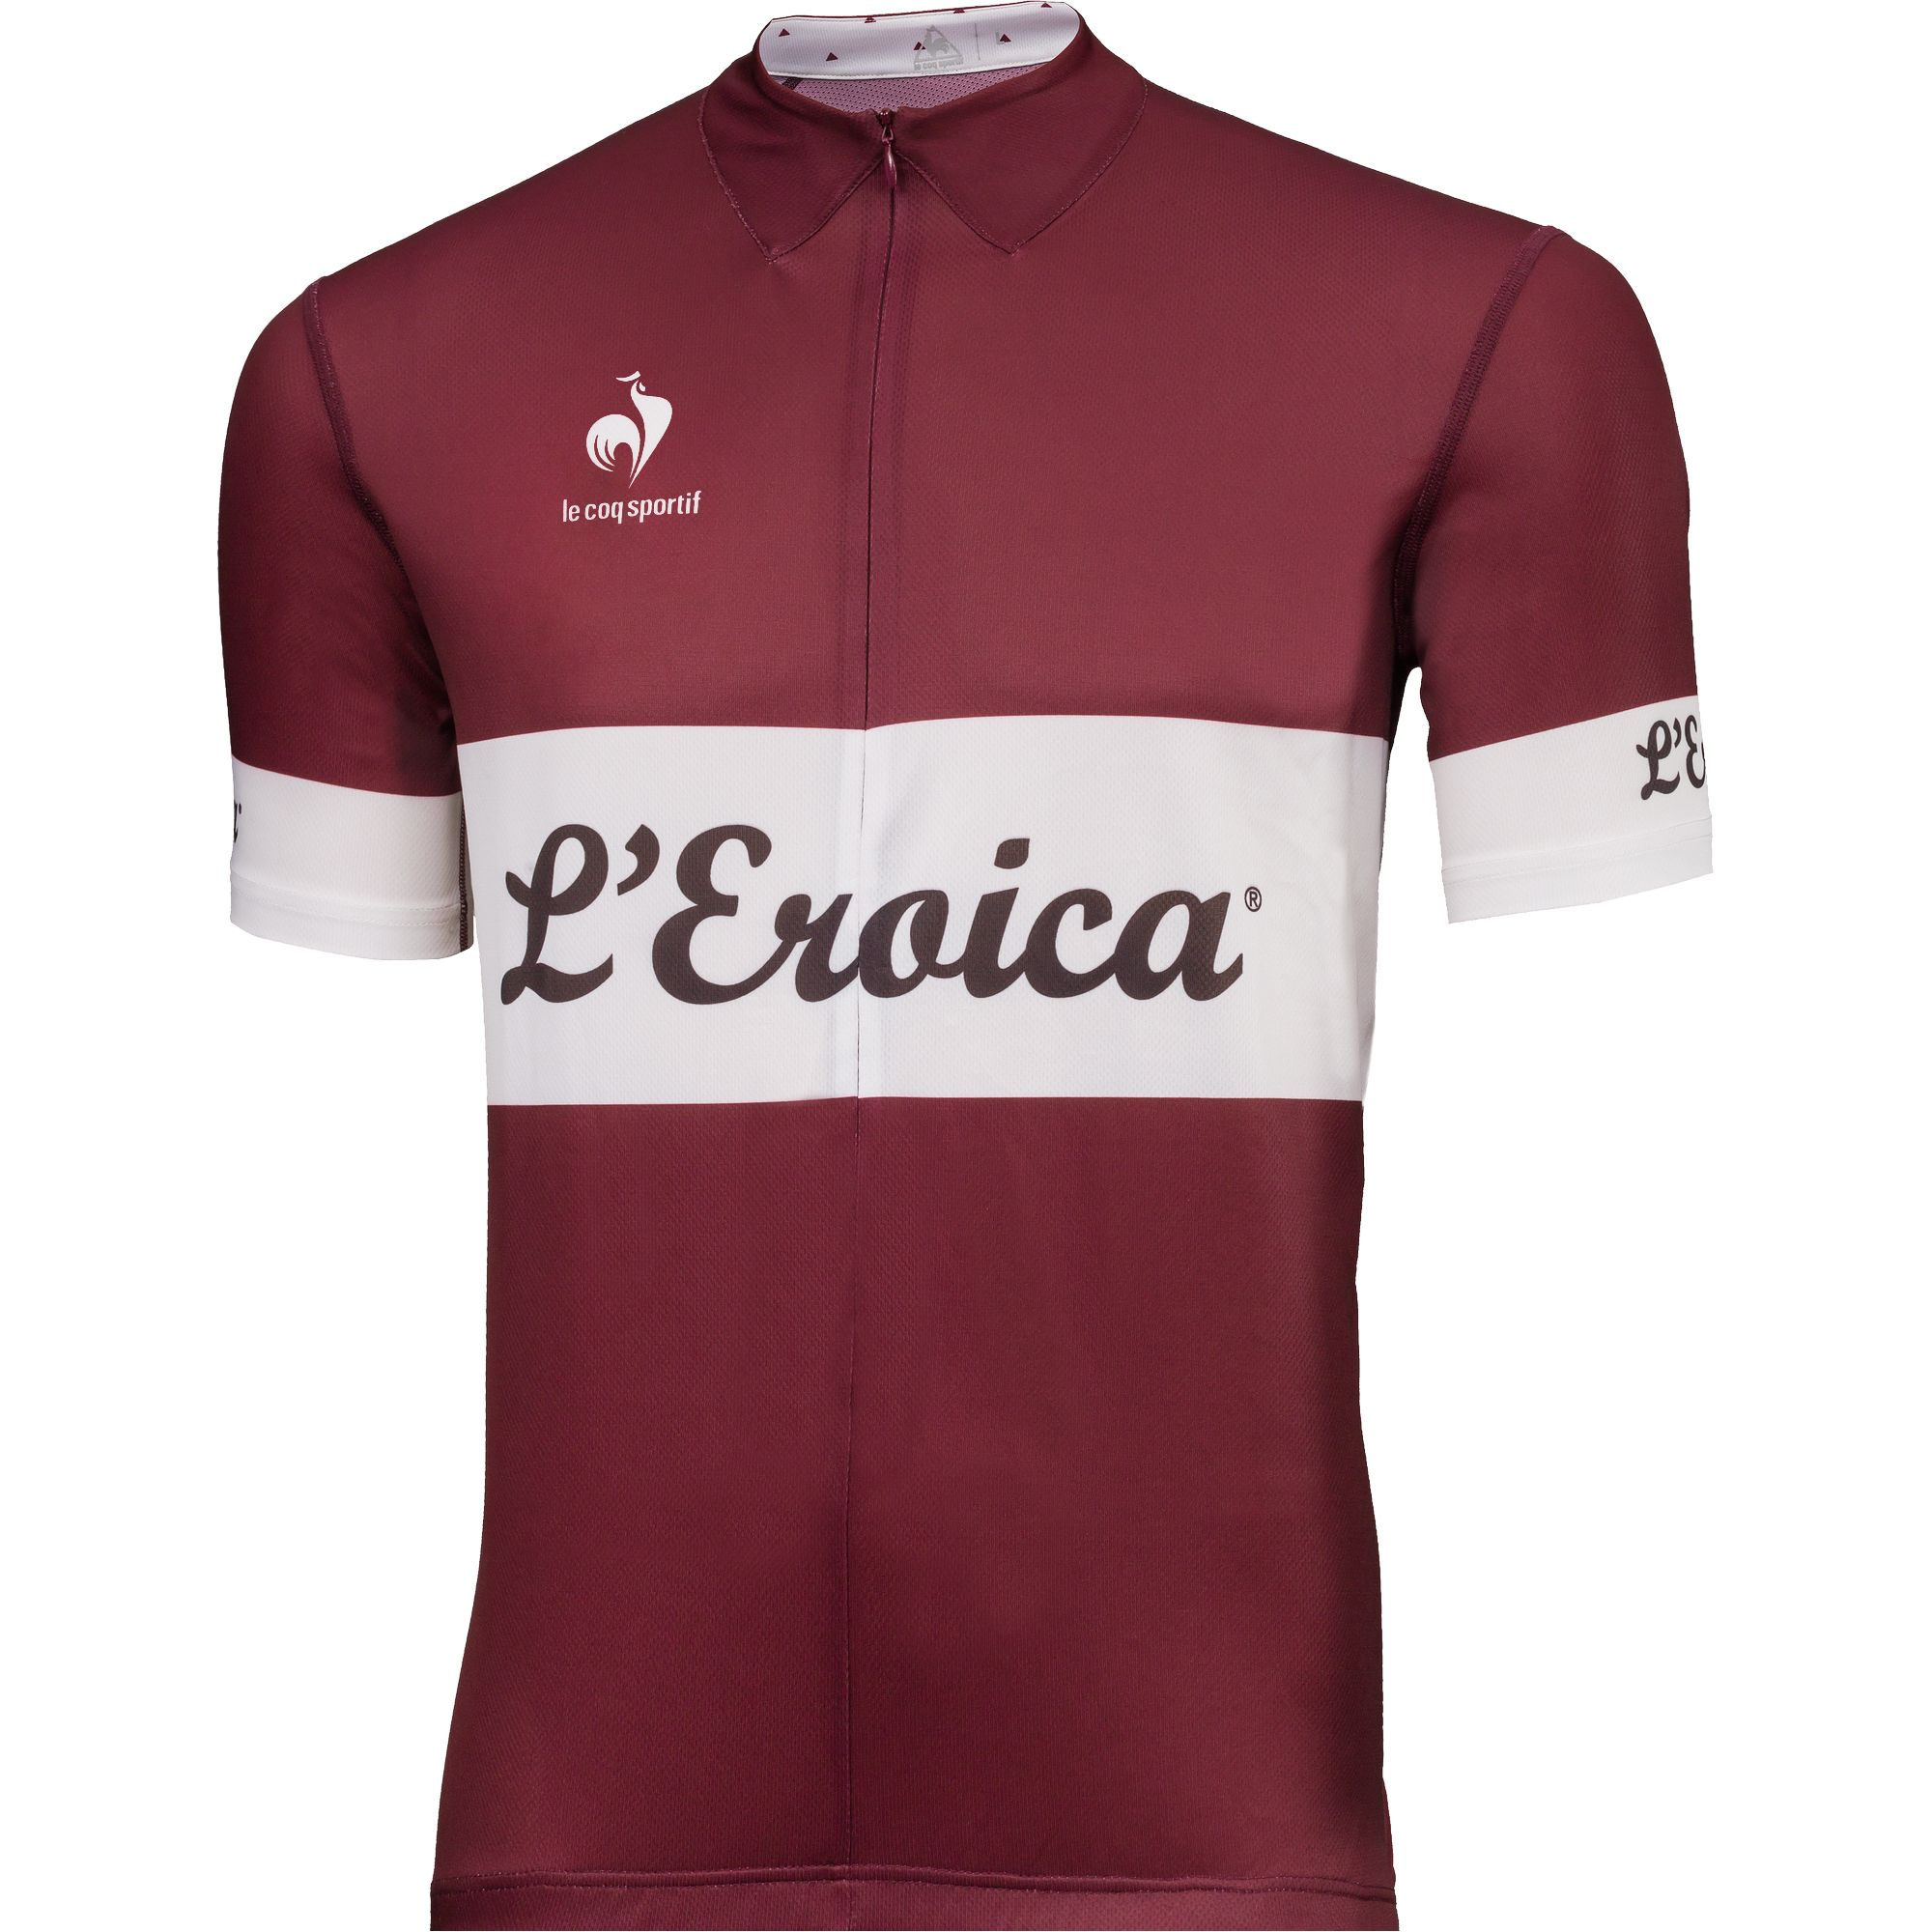 Eroica Performance Jersey Cycling Jersey Design Cycling Outfit Cycling Shirt